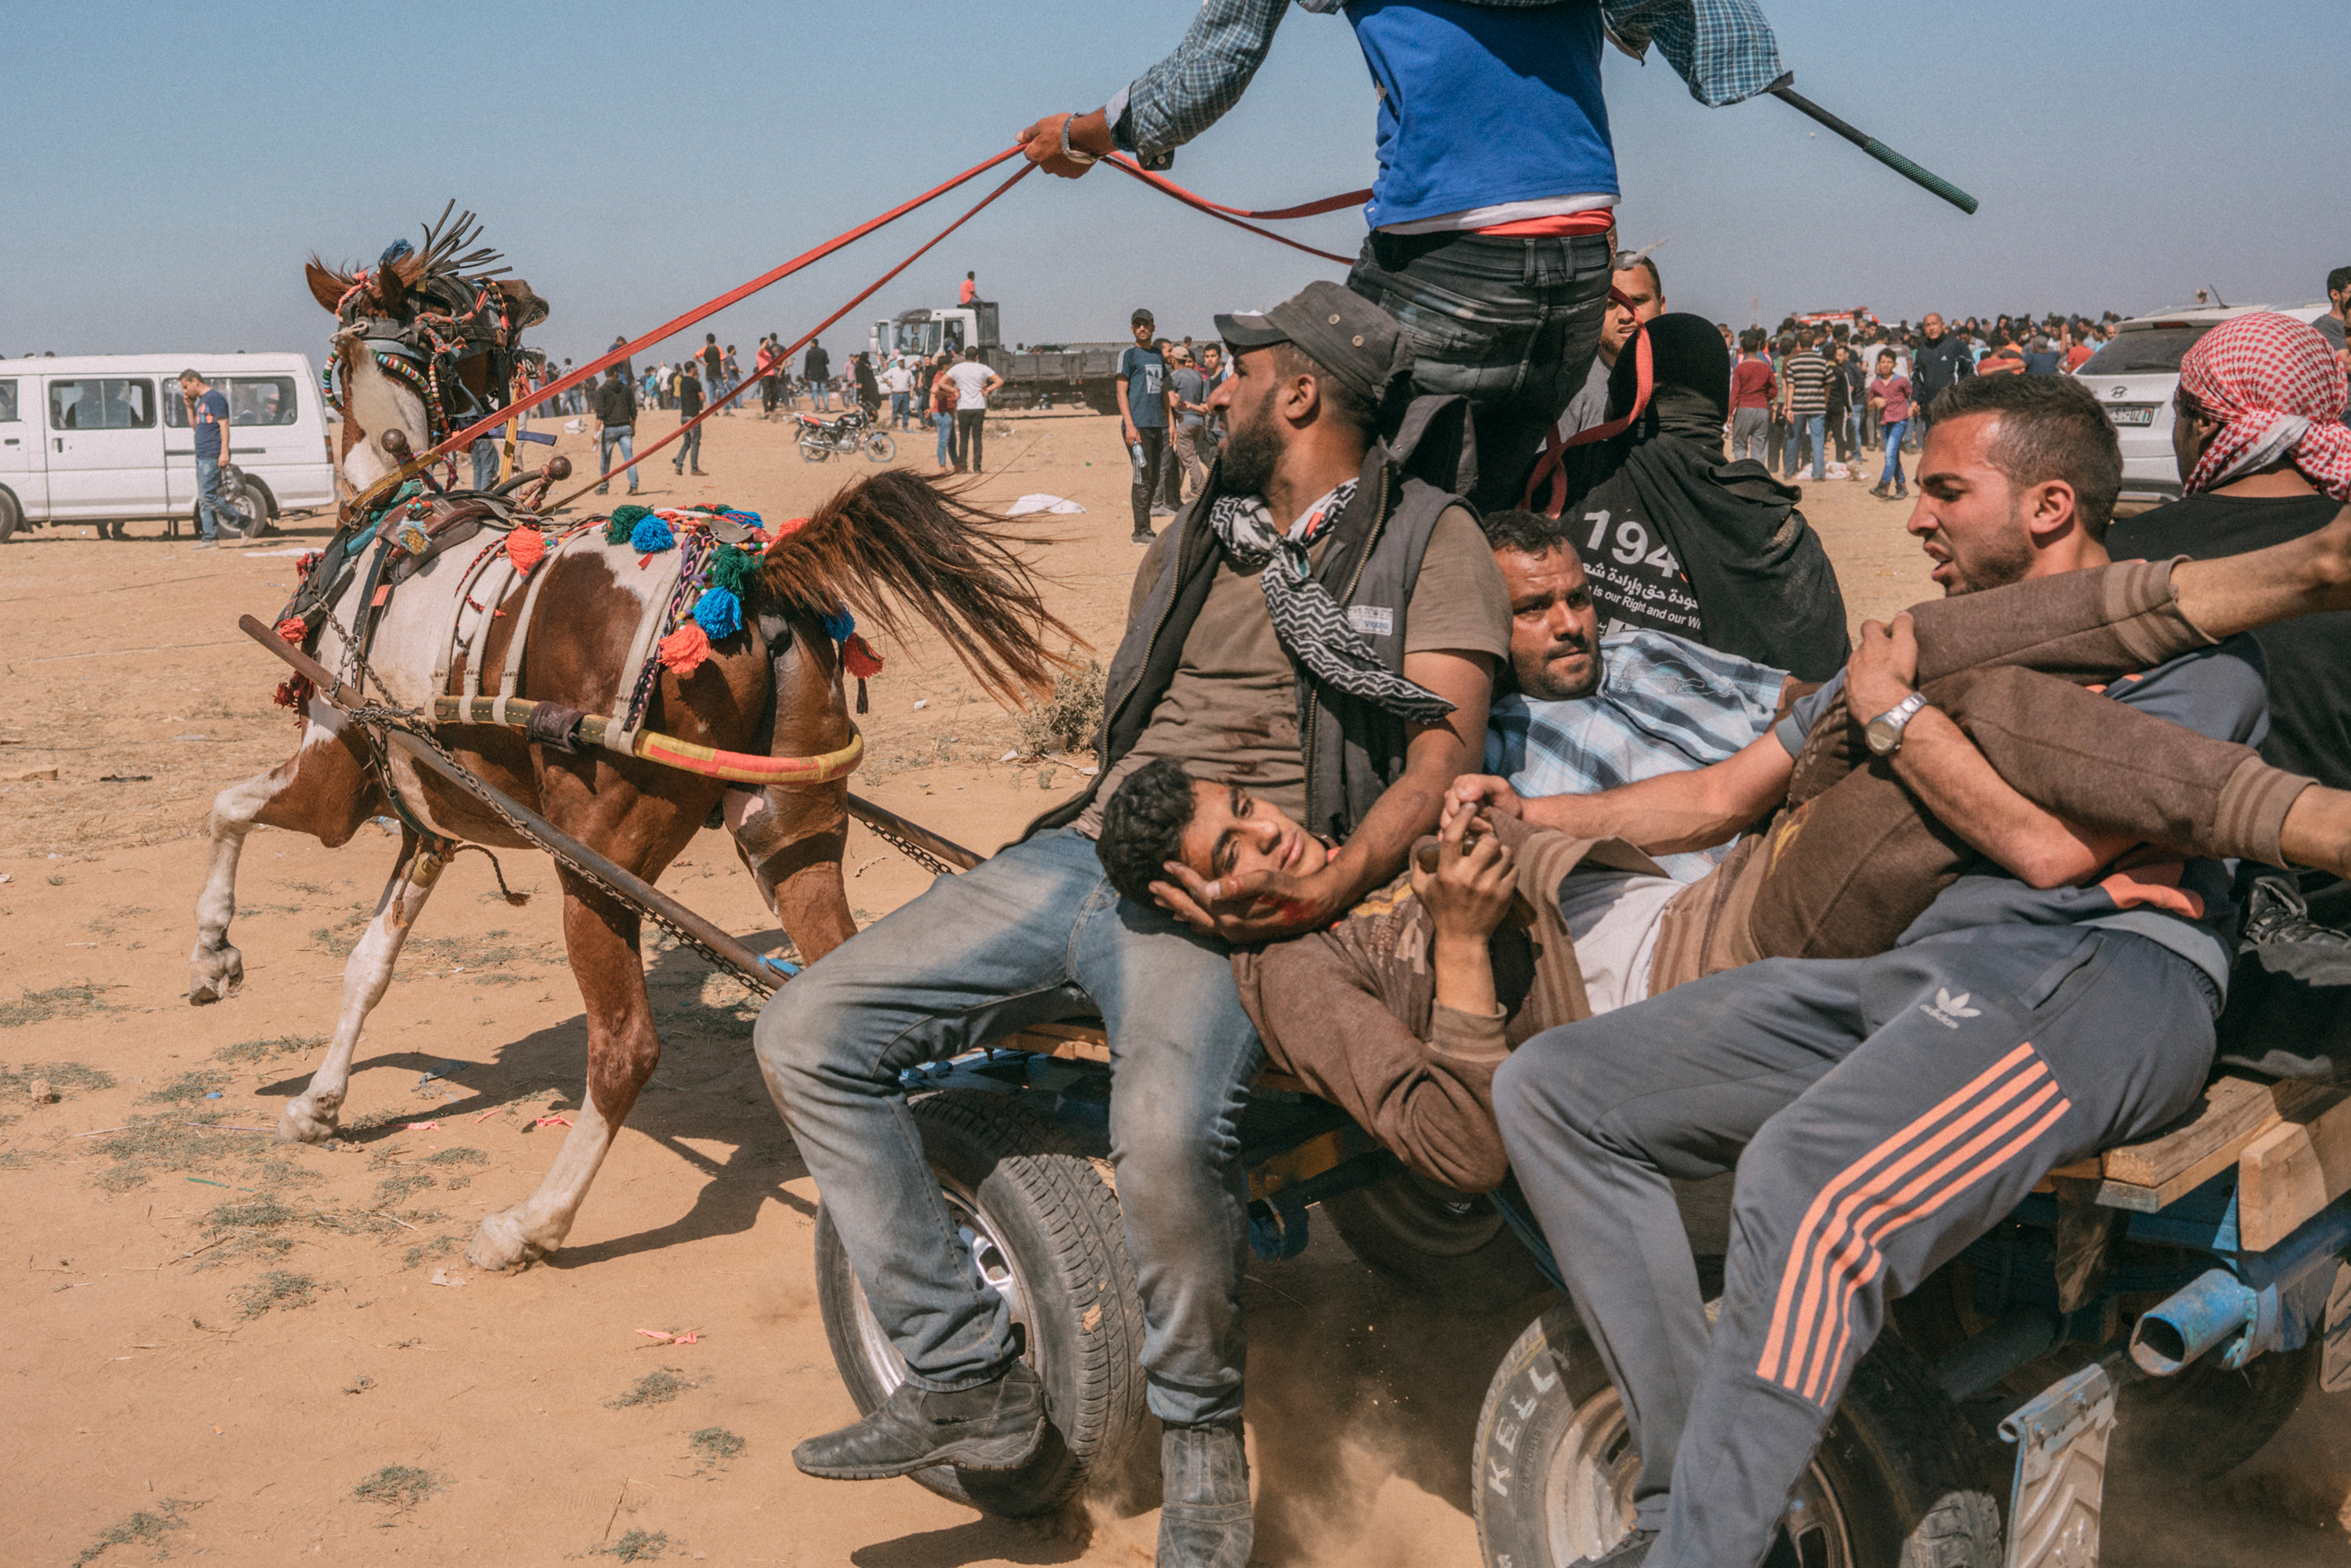 An injured Palestinian man is evacuated on a horse-drawn cart along the Gaza-Israel border on May 14, 2018.